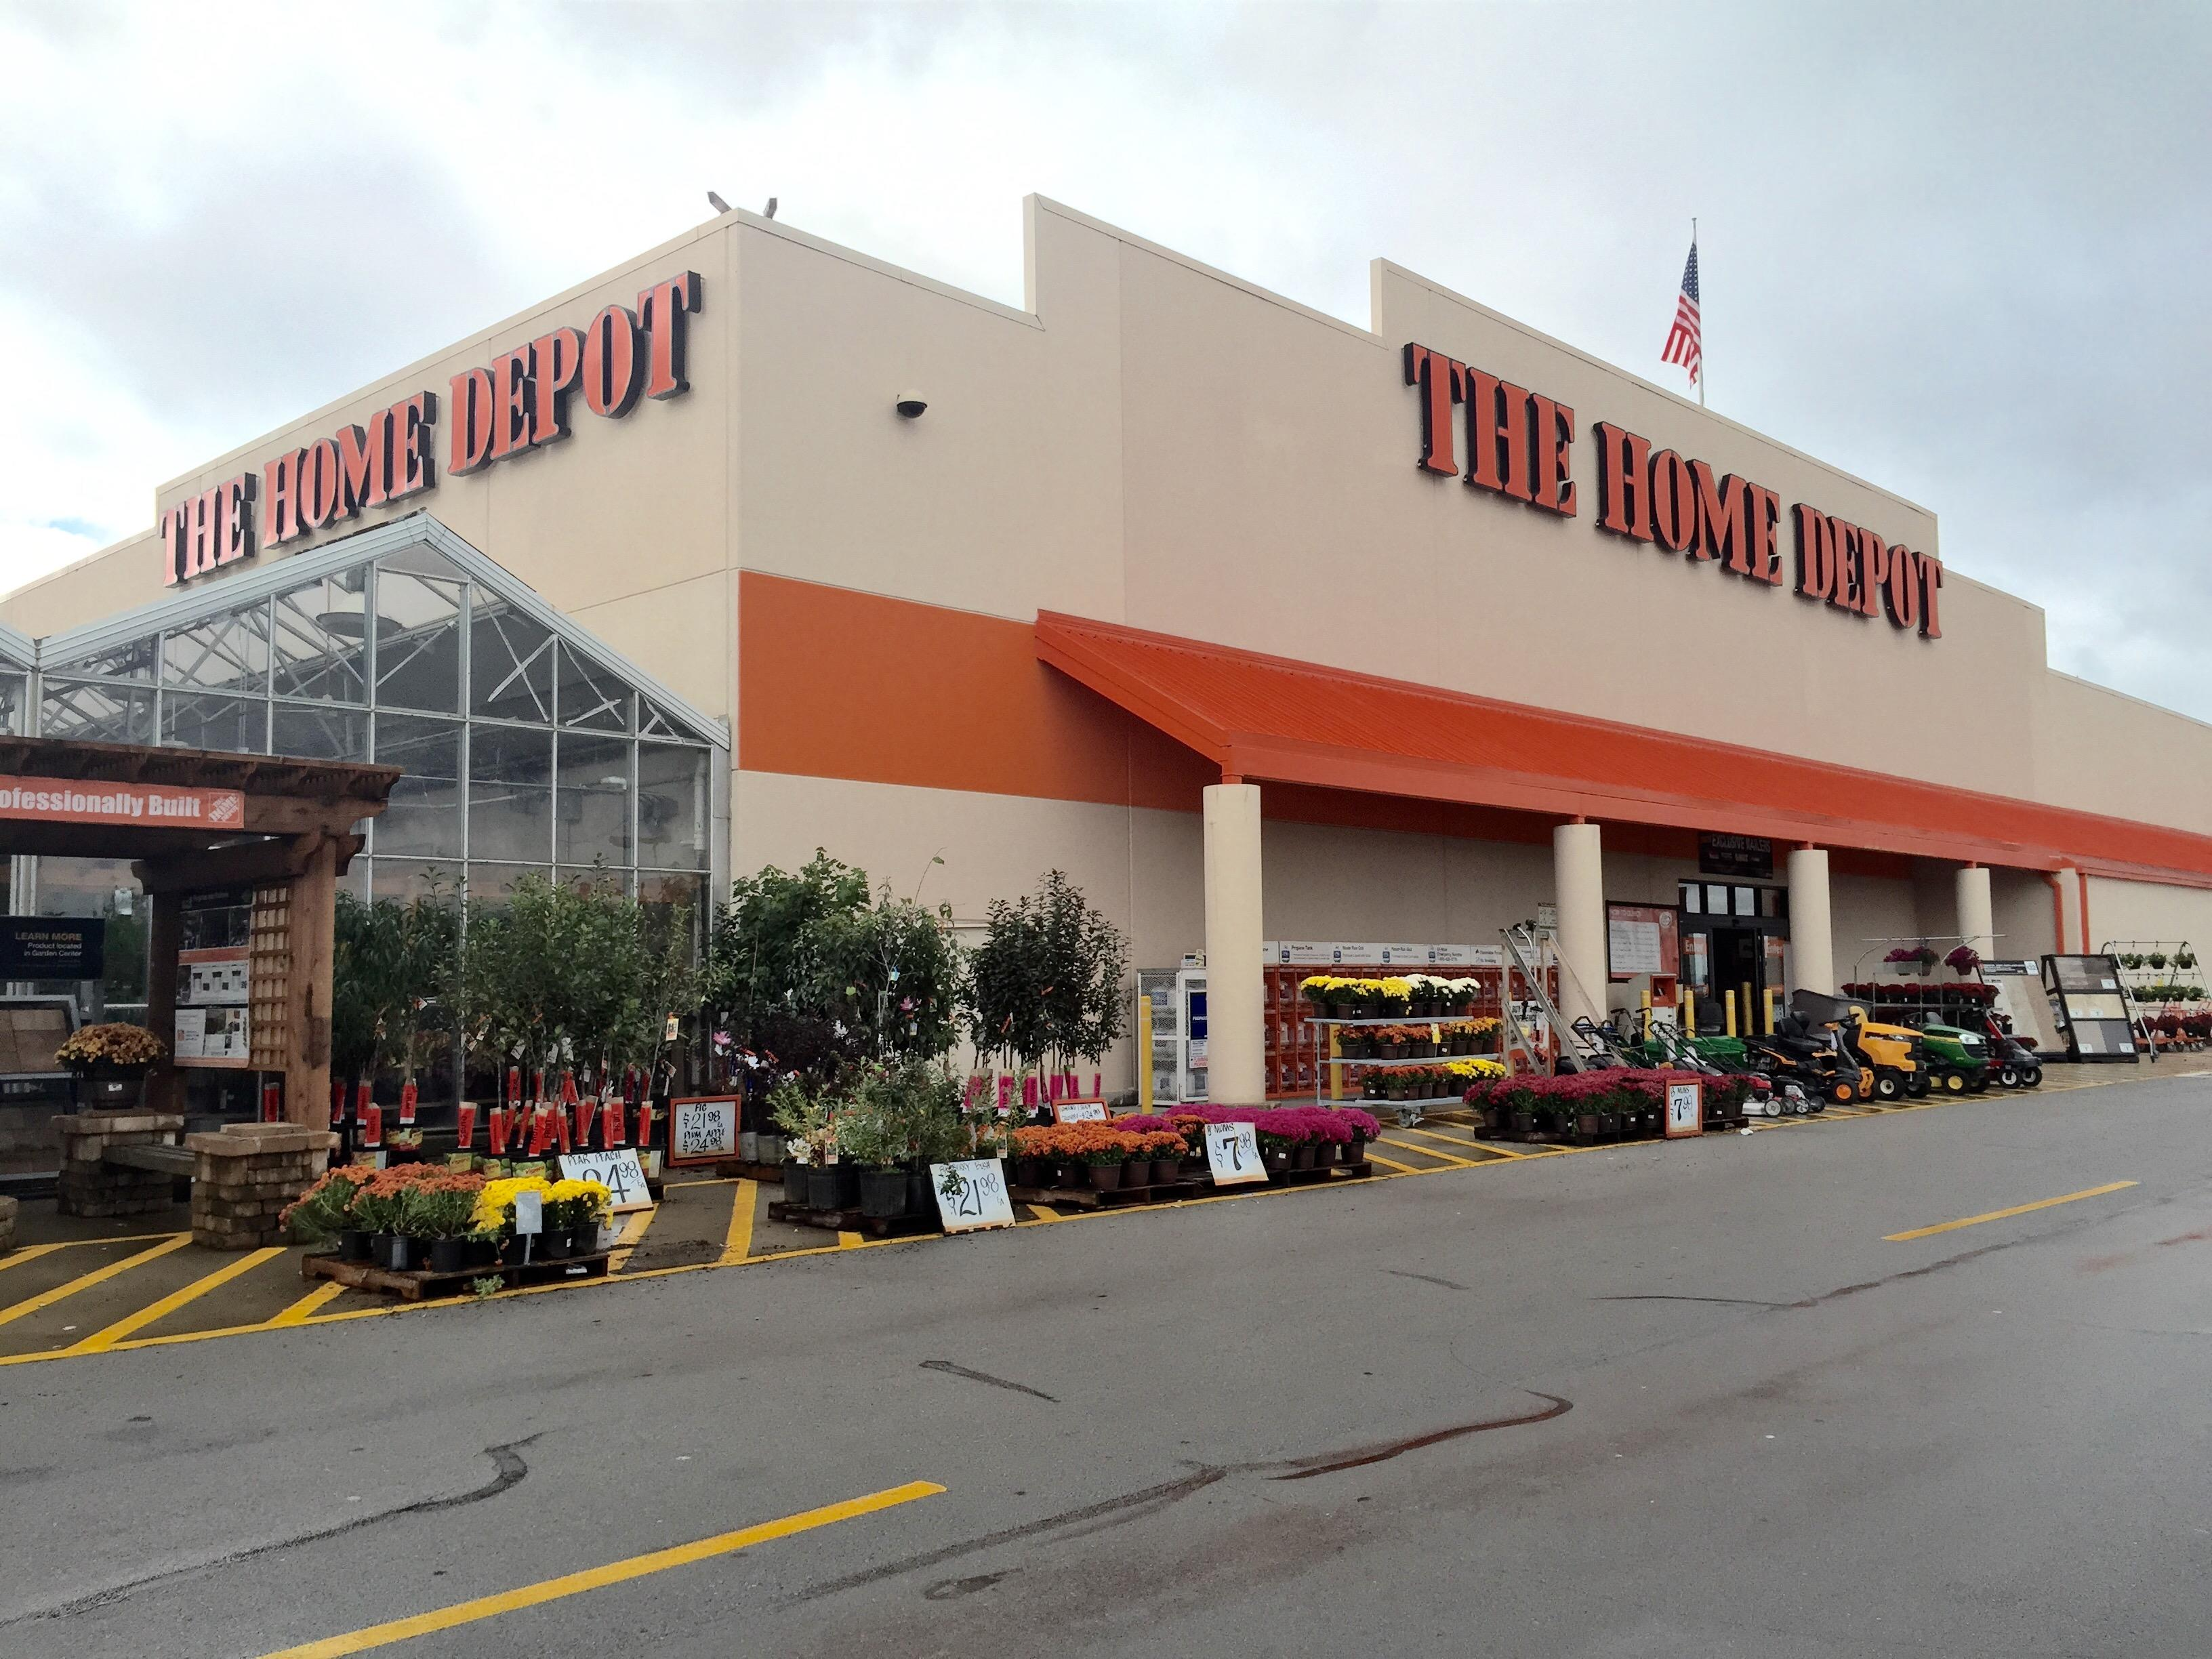 The home depot in fairfield al 35064 The fairfield